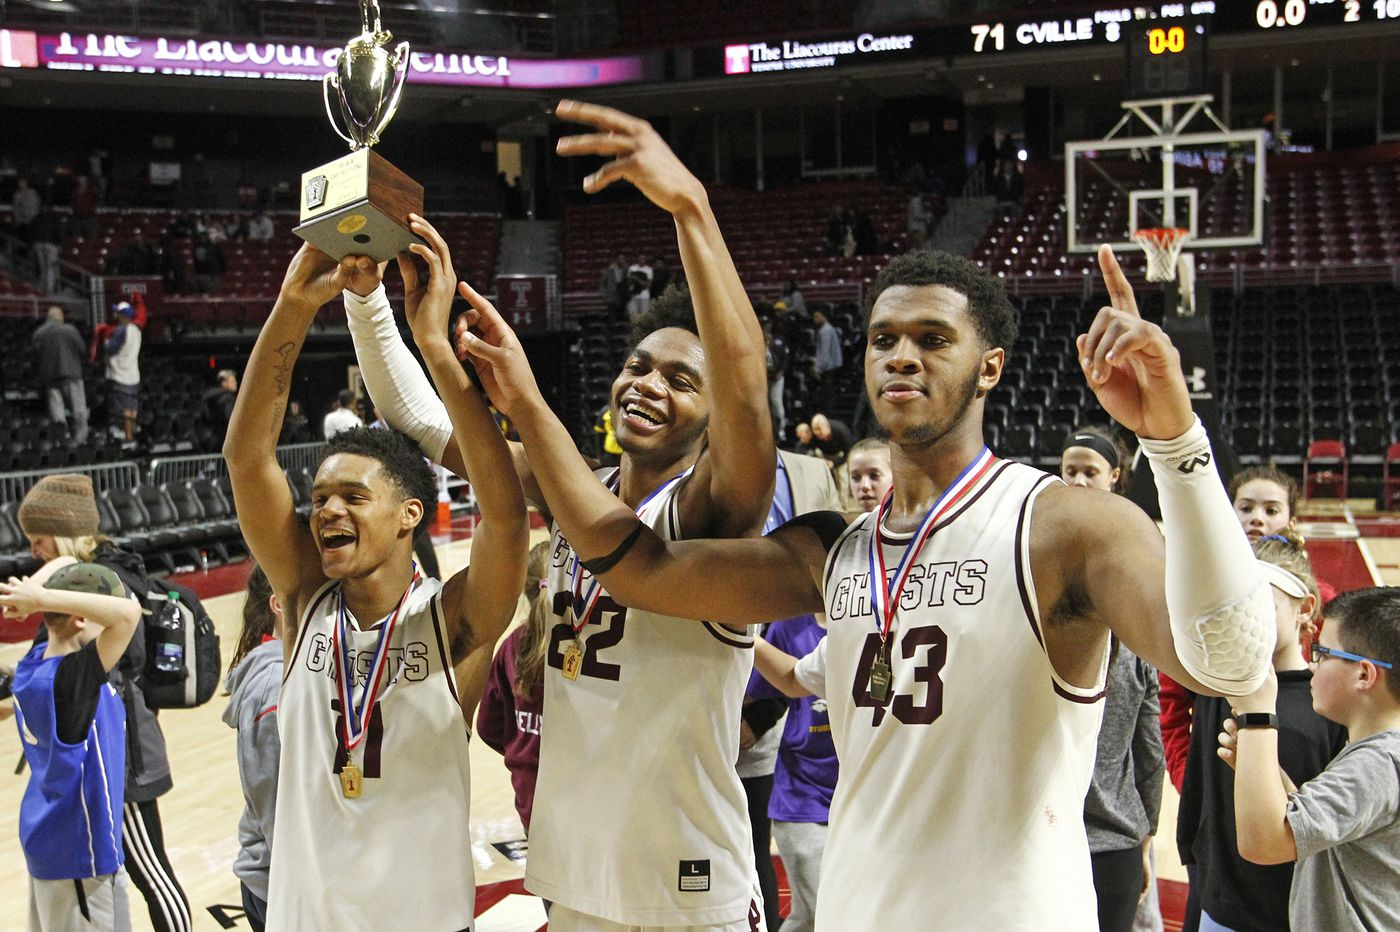 Led by Eric Dixon, Abington beats Coatesville to win third straight District 1 6A basketball championship